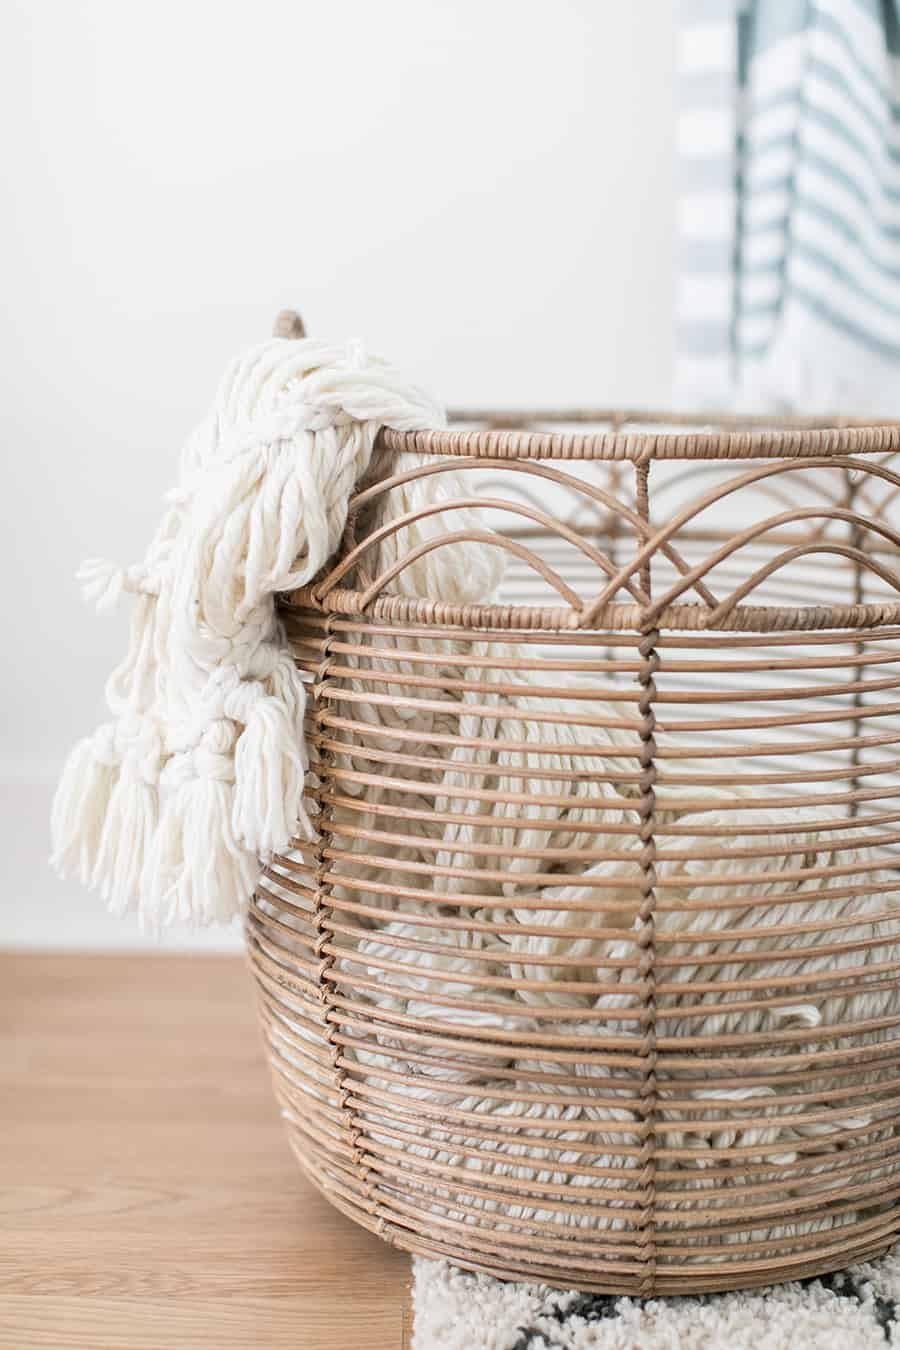 Laundry basket with a knit blanket